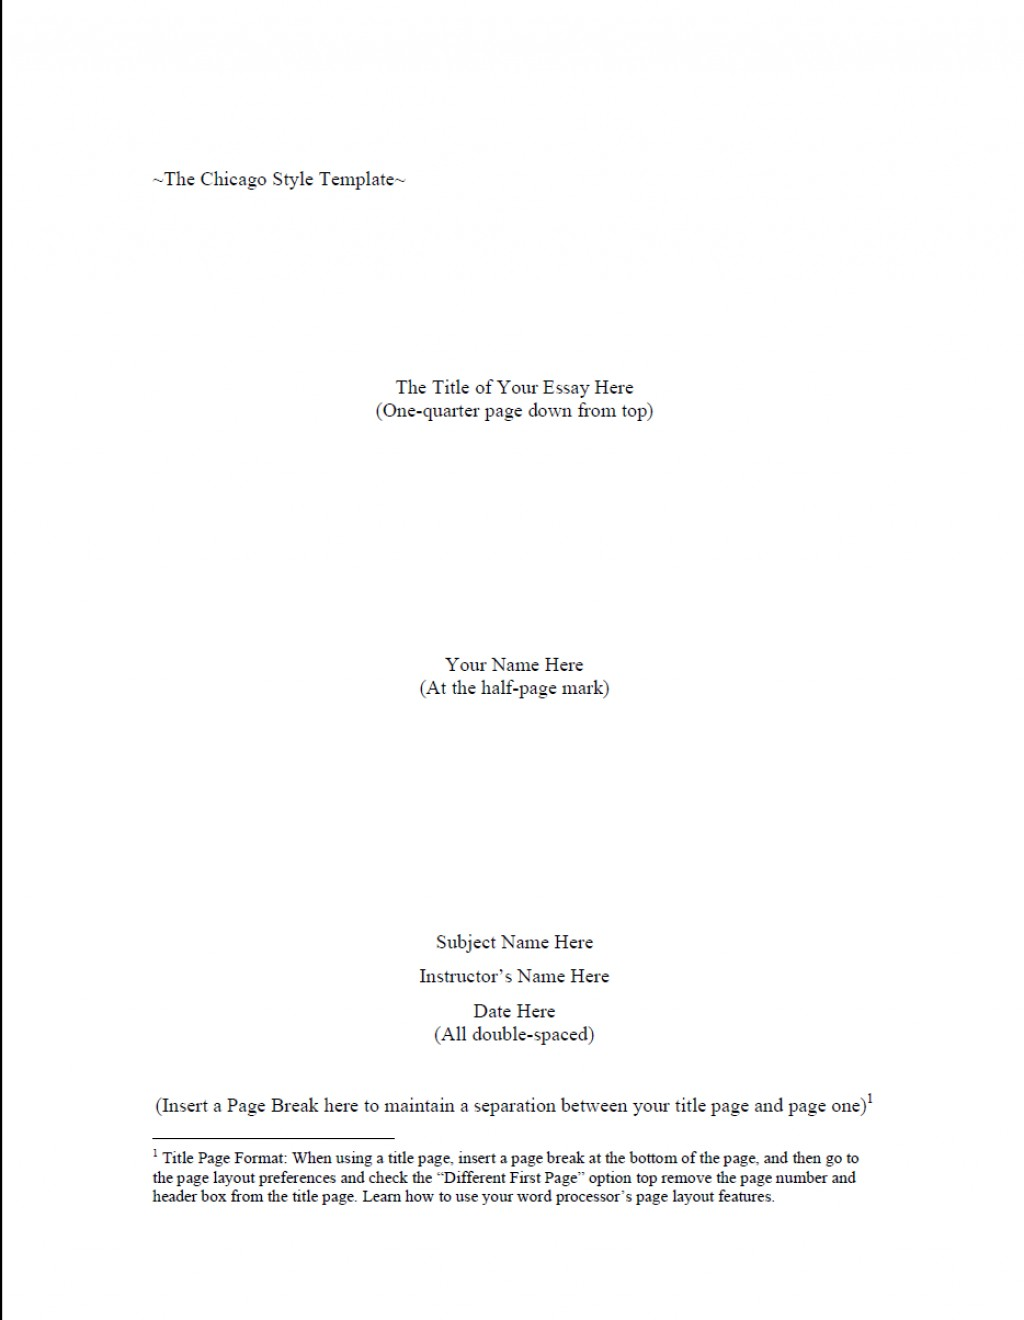 004 Chicago Style Research Paper Format Paper1 Stupendous Sample Outline Large